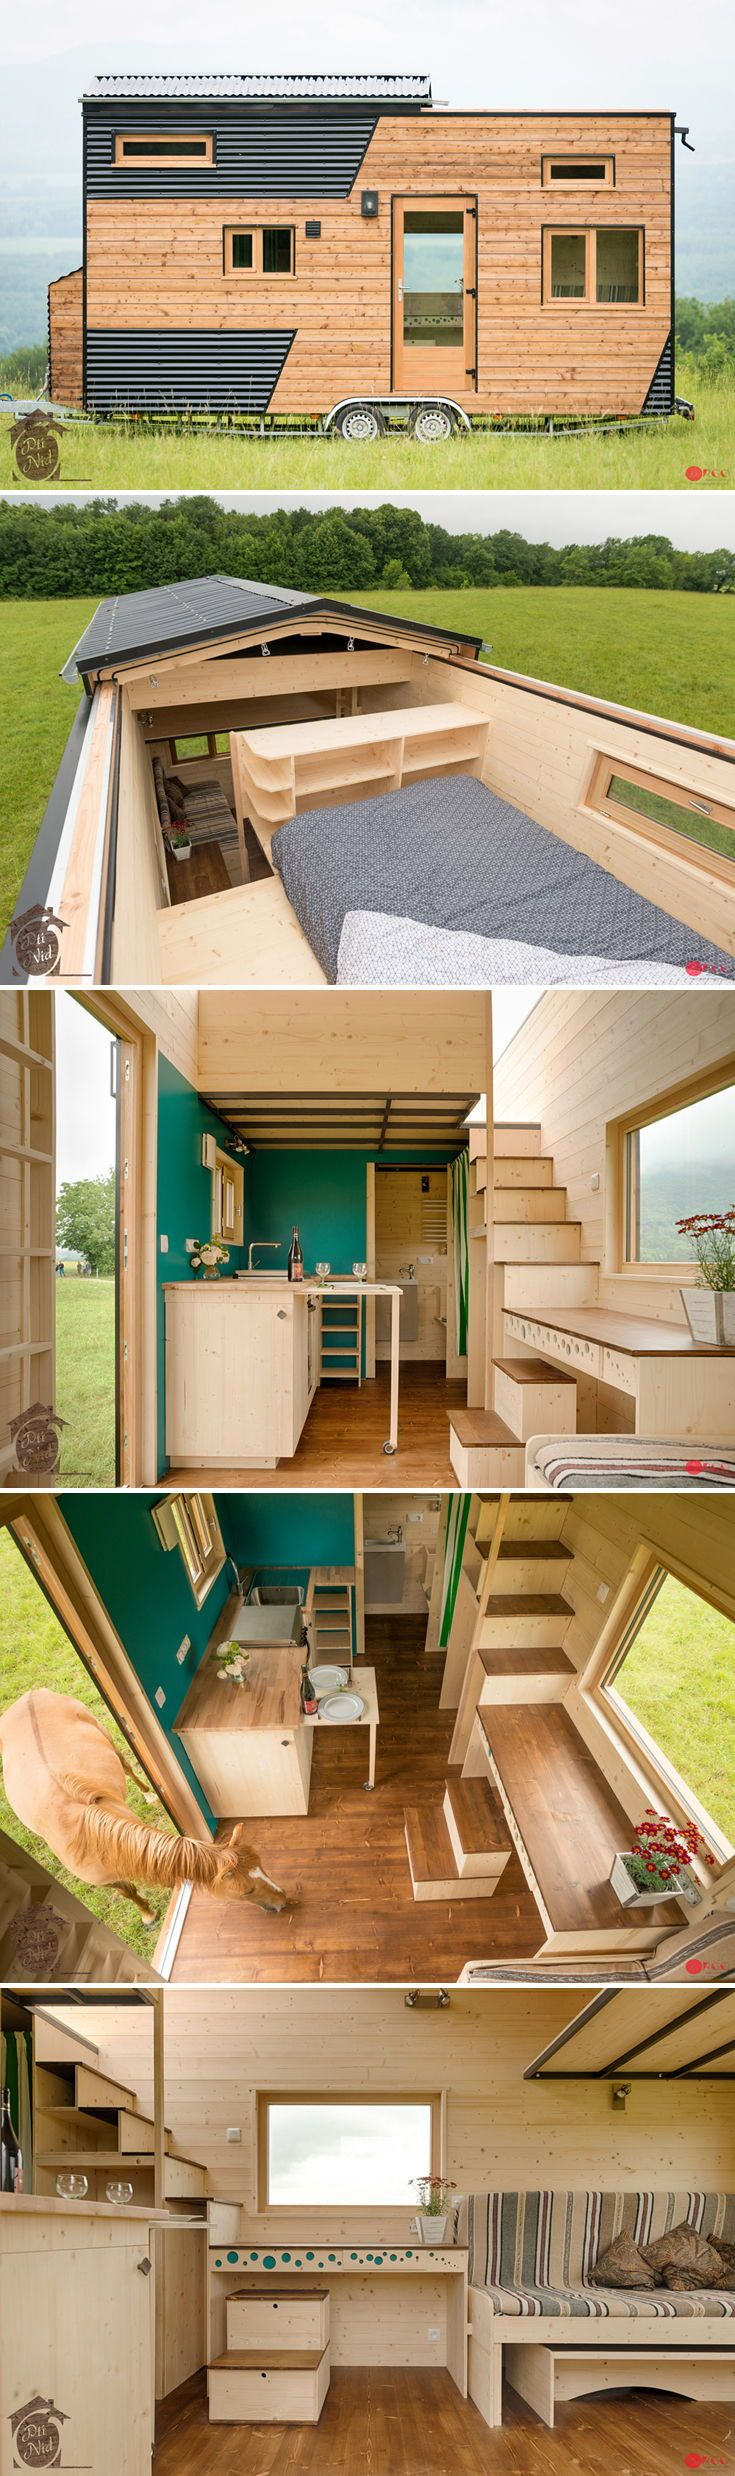 Based on their popular Head in the Stars tiny home, the Cecile by Optinid features a full sunroof. The roof slides open to provide an unobstructed view from the master bedroom loft. #tinyhome